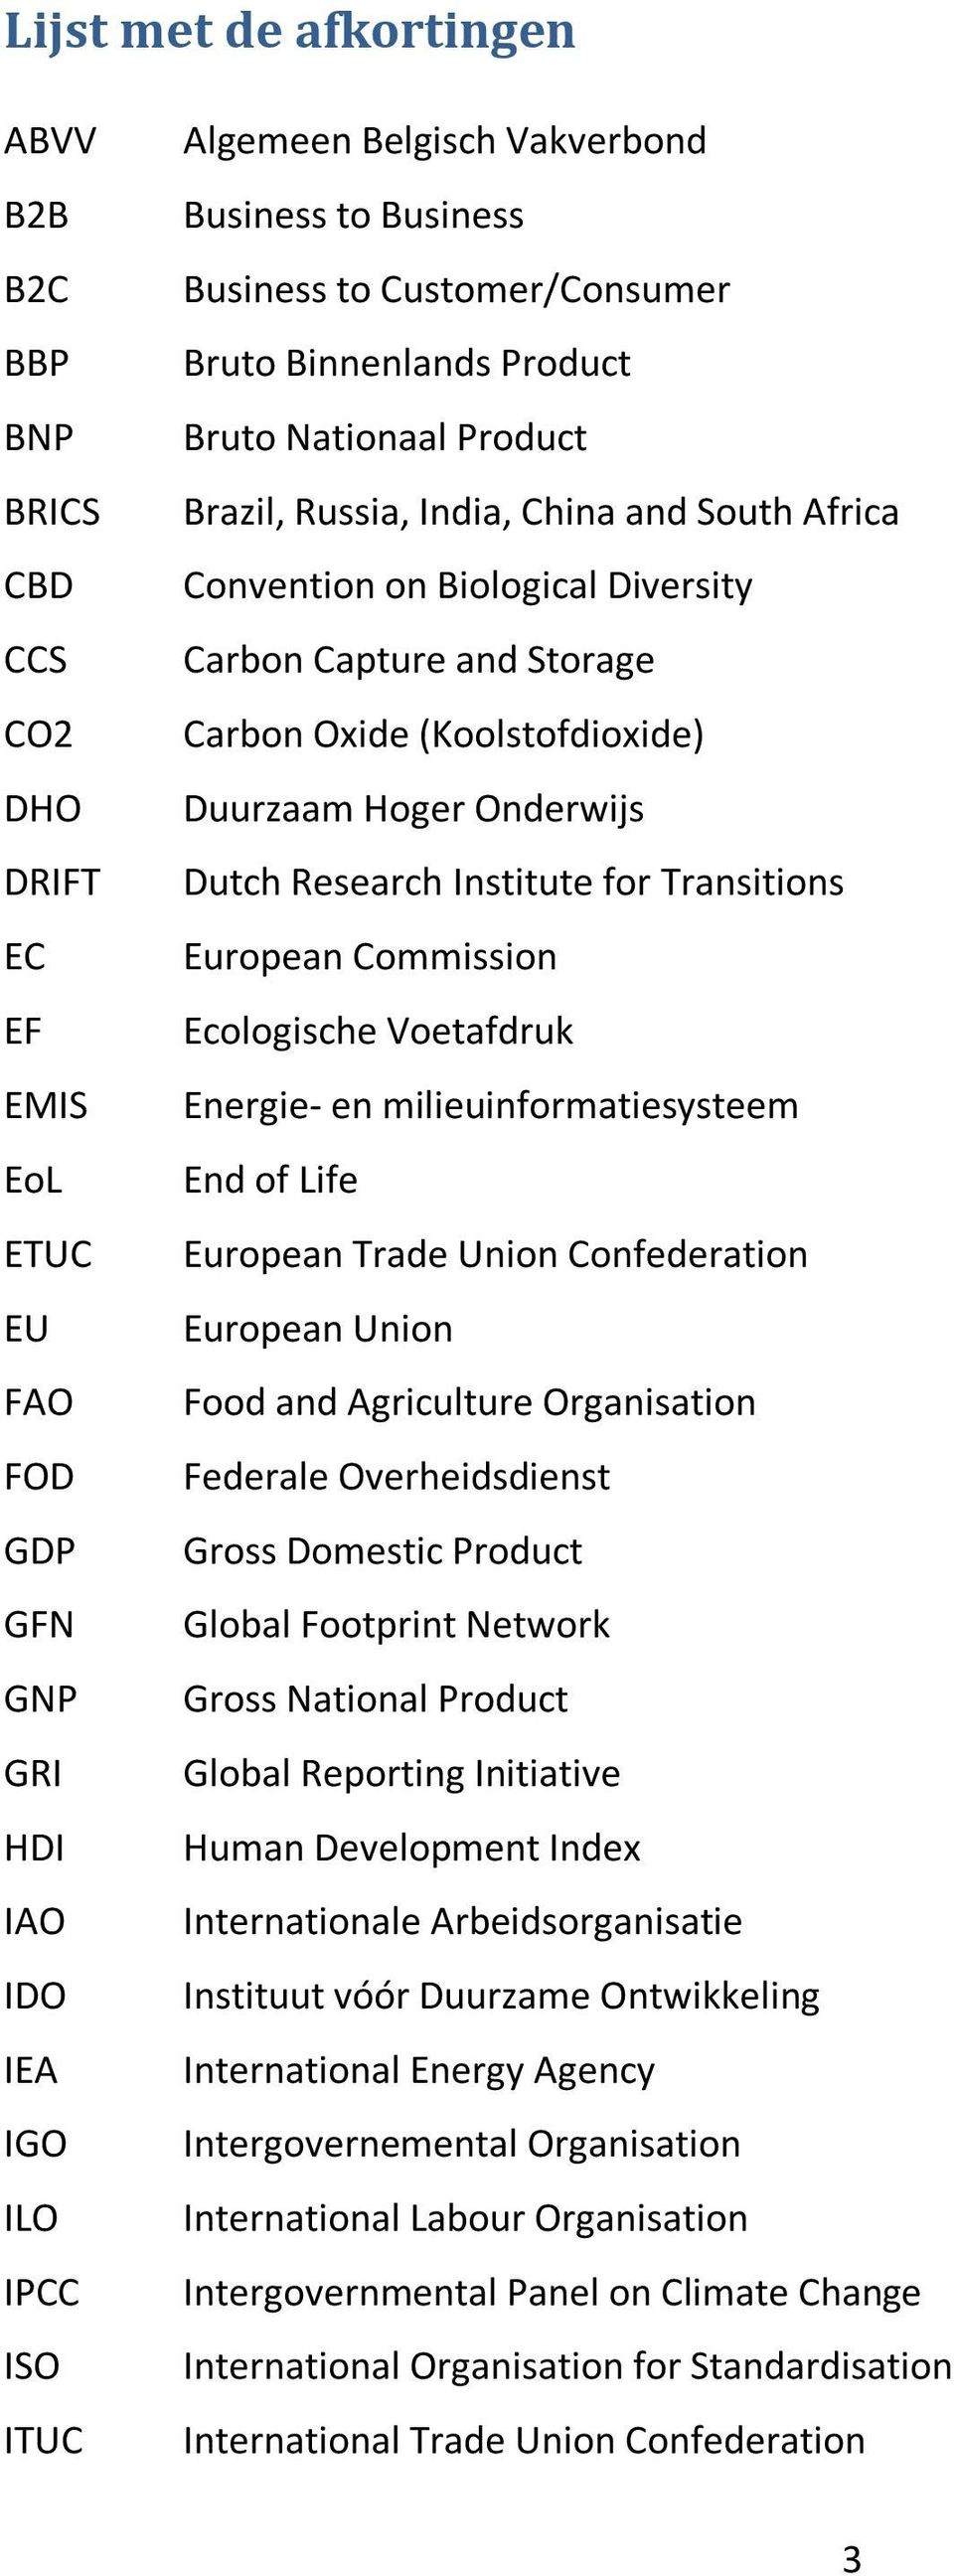 Carbon Oxide (Koolstofdioxide) Duurzaam Hoger Onderwijs Dutch Research Institute for Transitions European Commission Ecologische Voetafdruk Energie- en milieuinformatiesysteem End of Life European